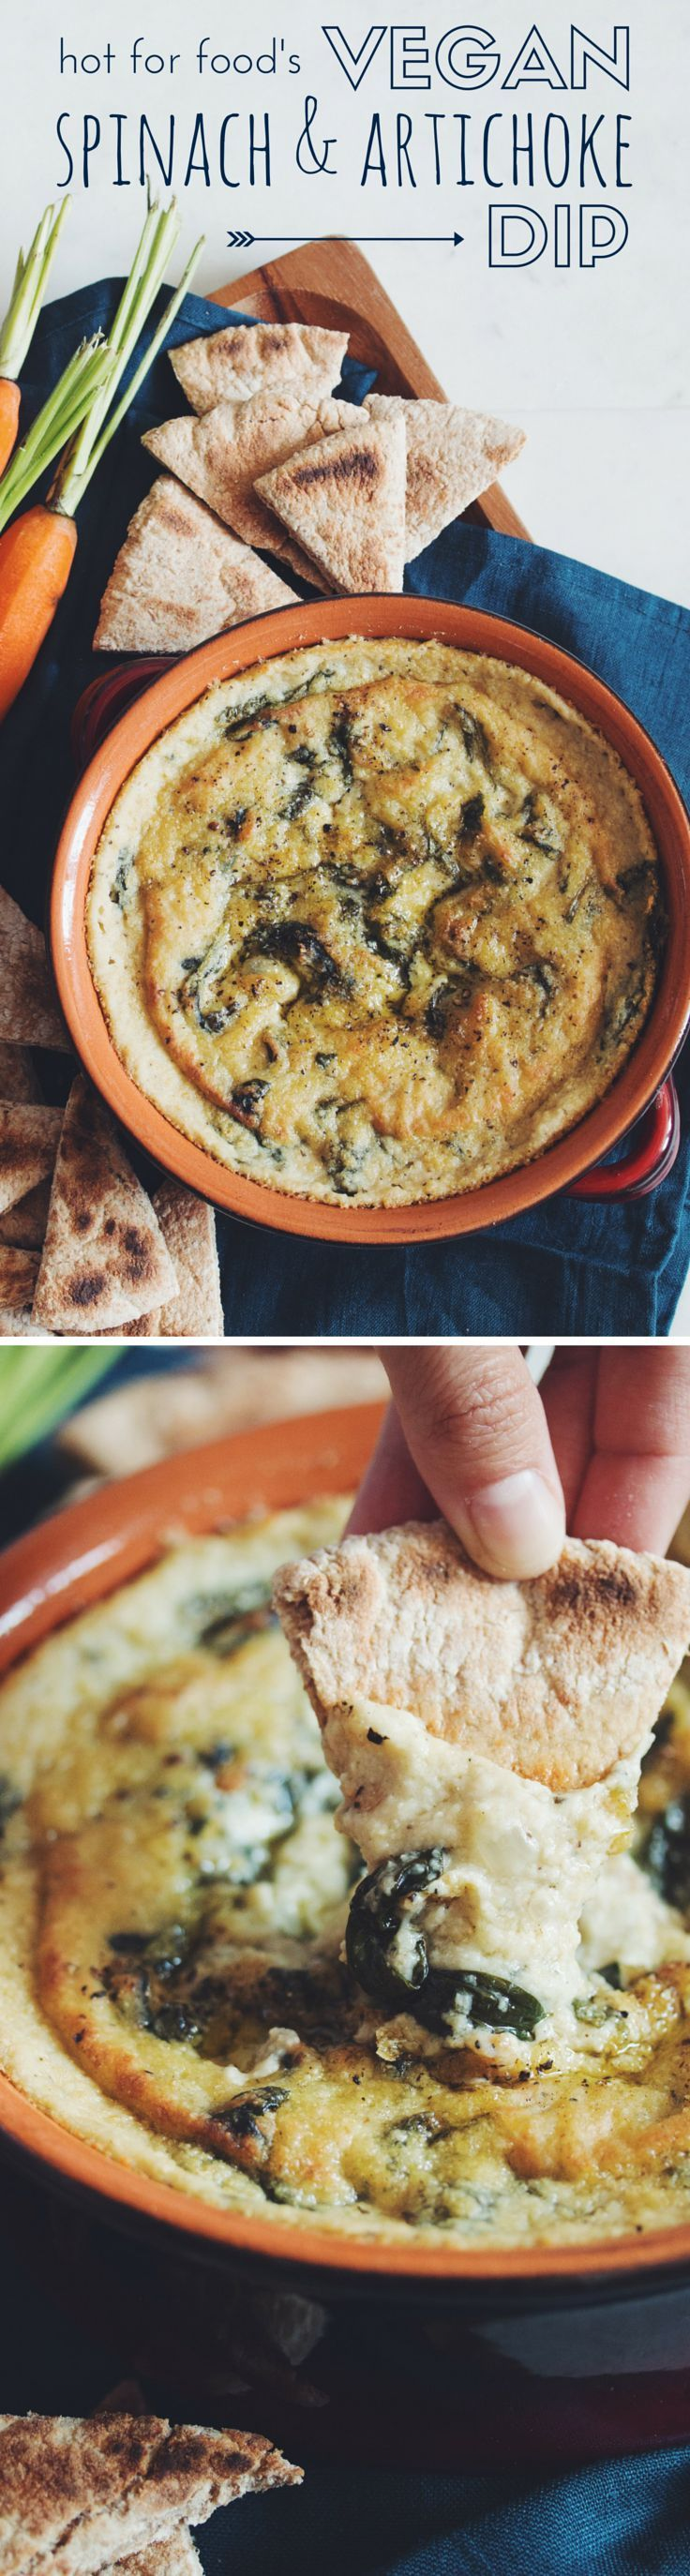 #vegan spinach & artichoke dip | RECIPE by hot for food